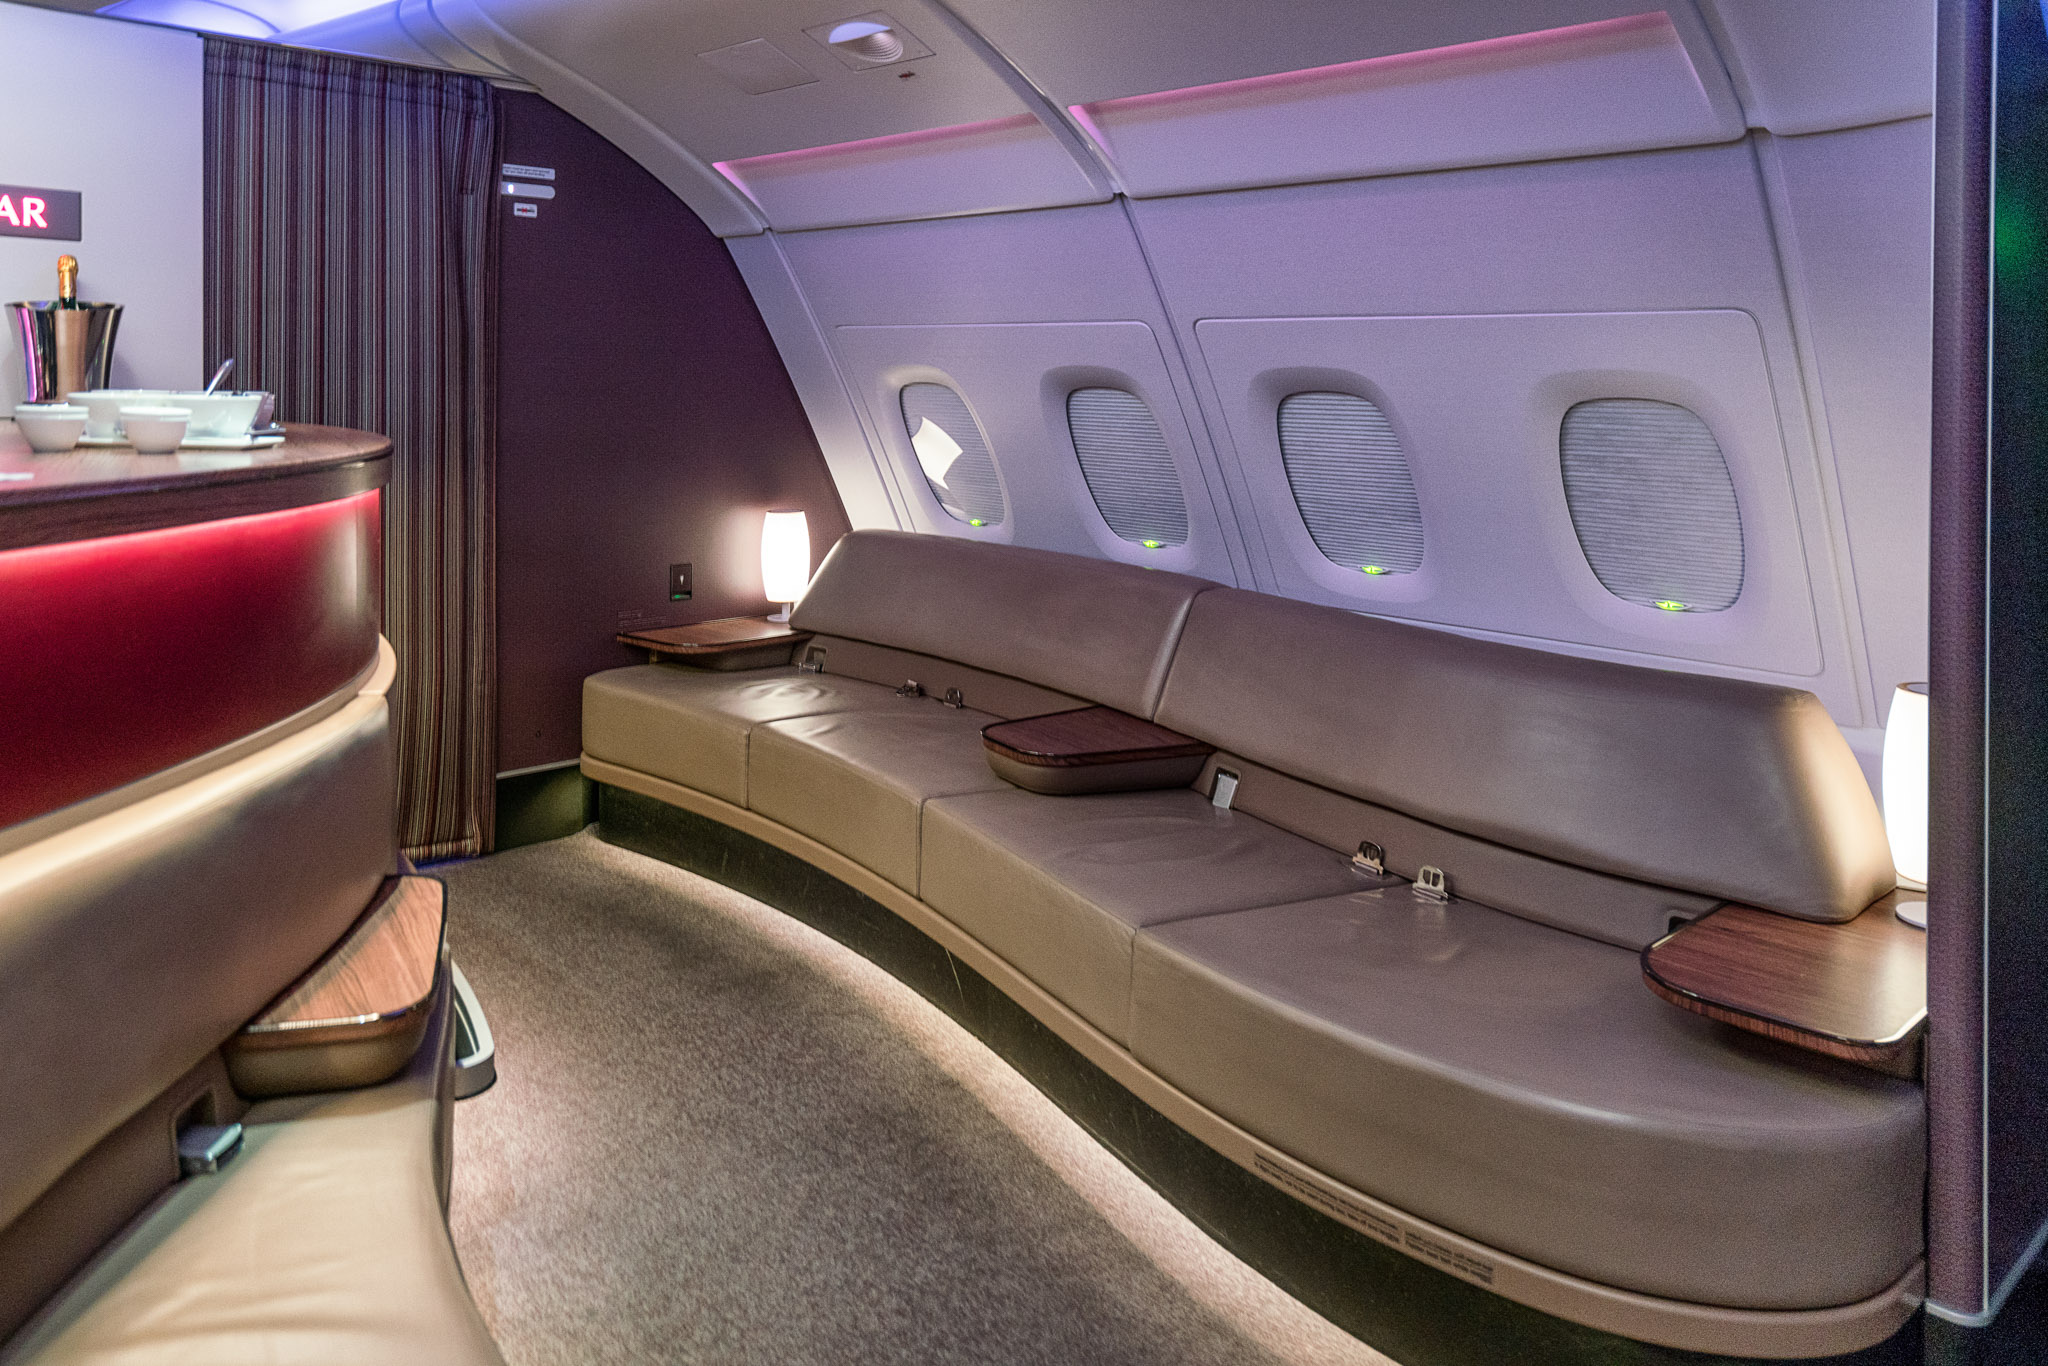 Qatar Airways A380 First Class Review | Andy's Travel Blog Qatar Airways First Class A380